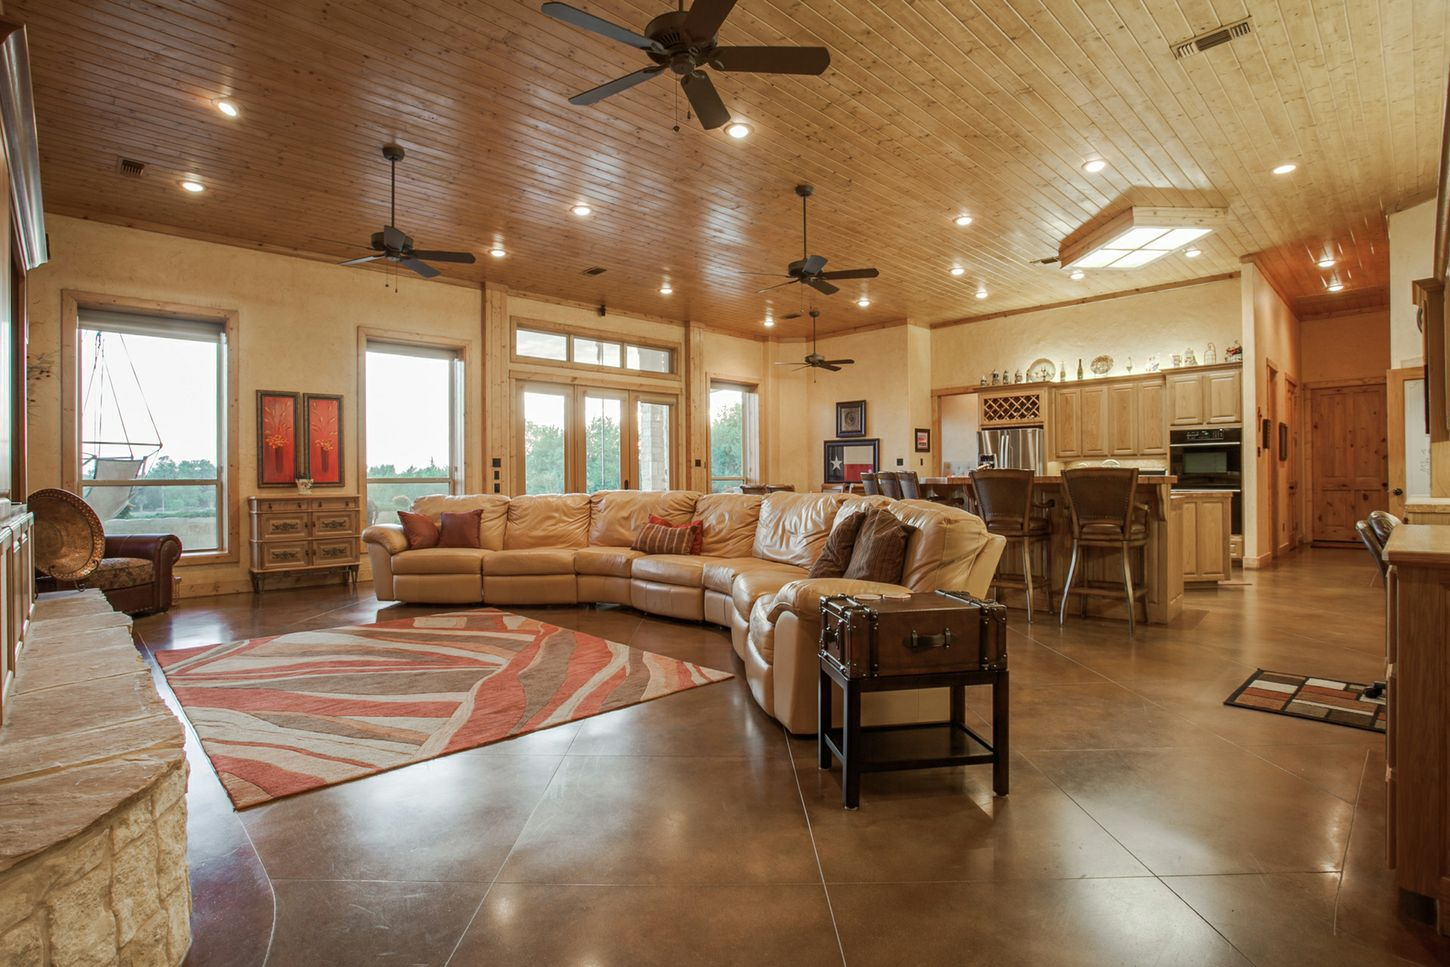 Escape Ebola With This: A Dang 4200 Square Foot ... Huge Barndominium